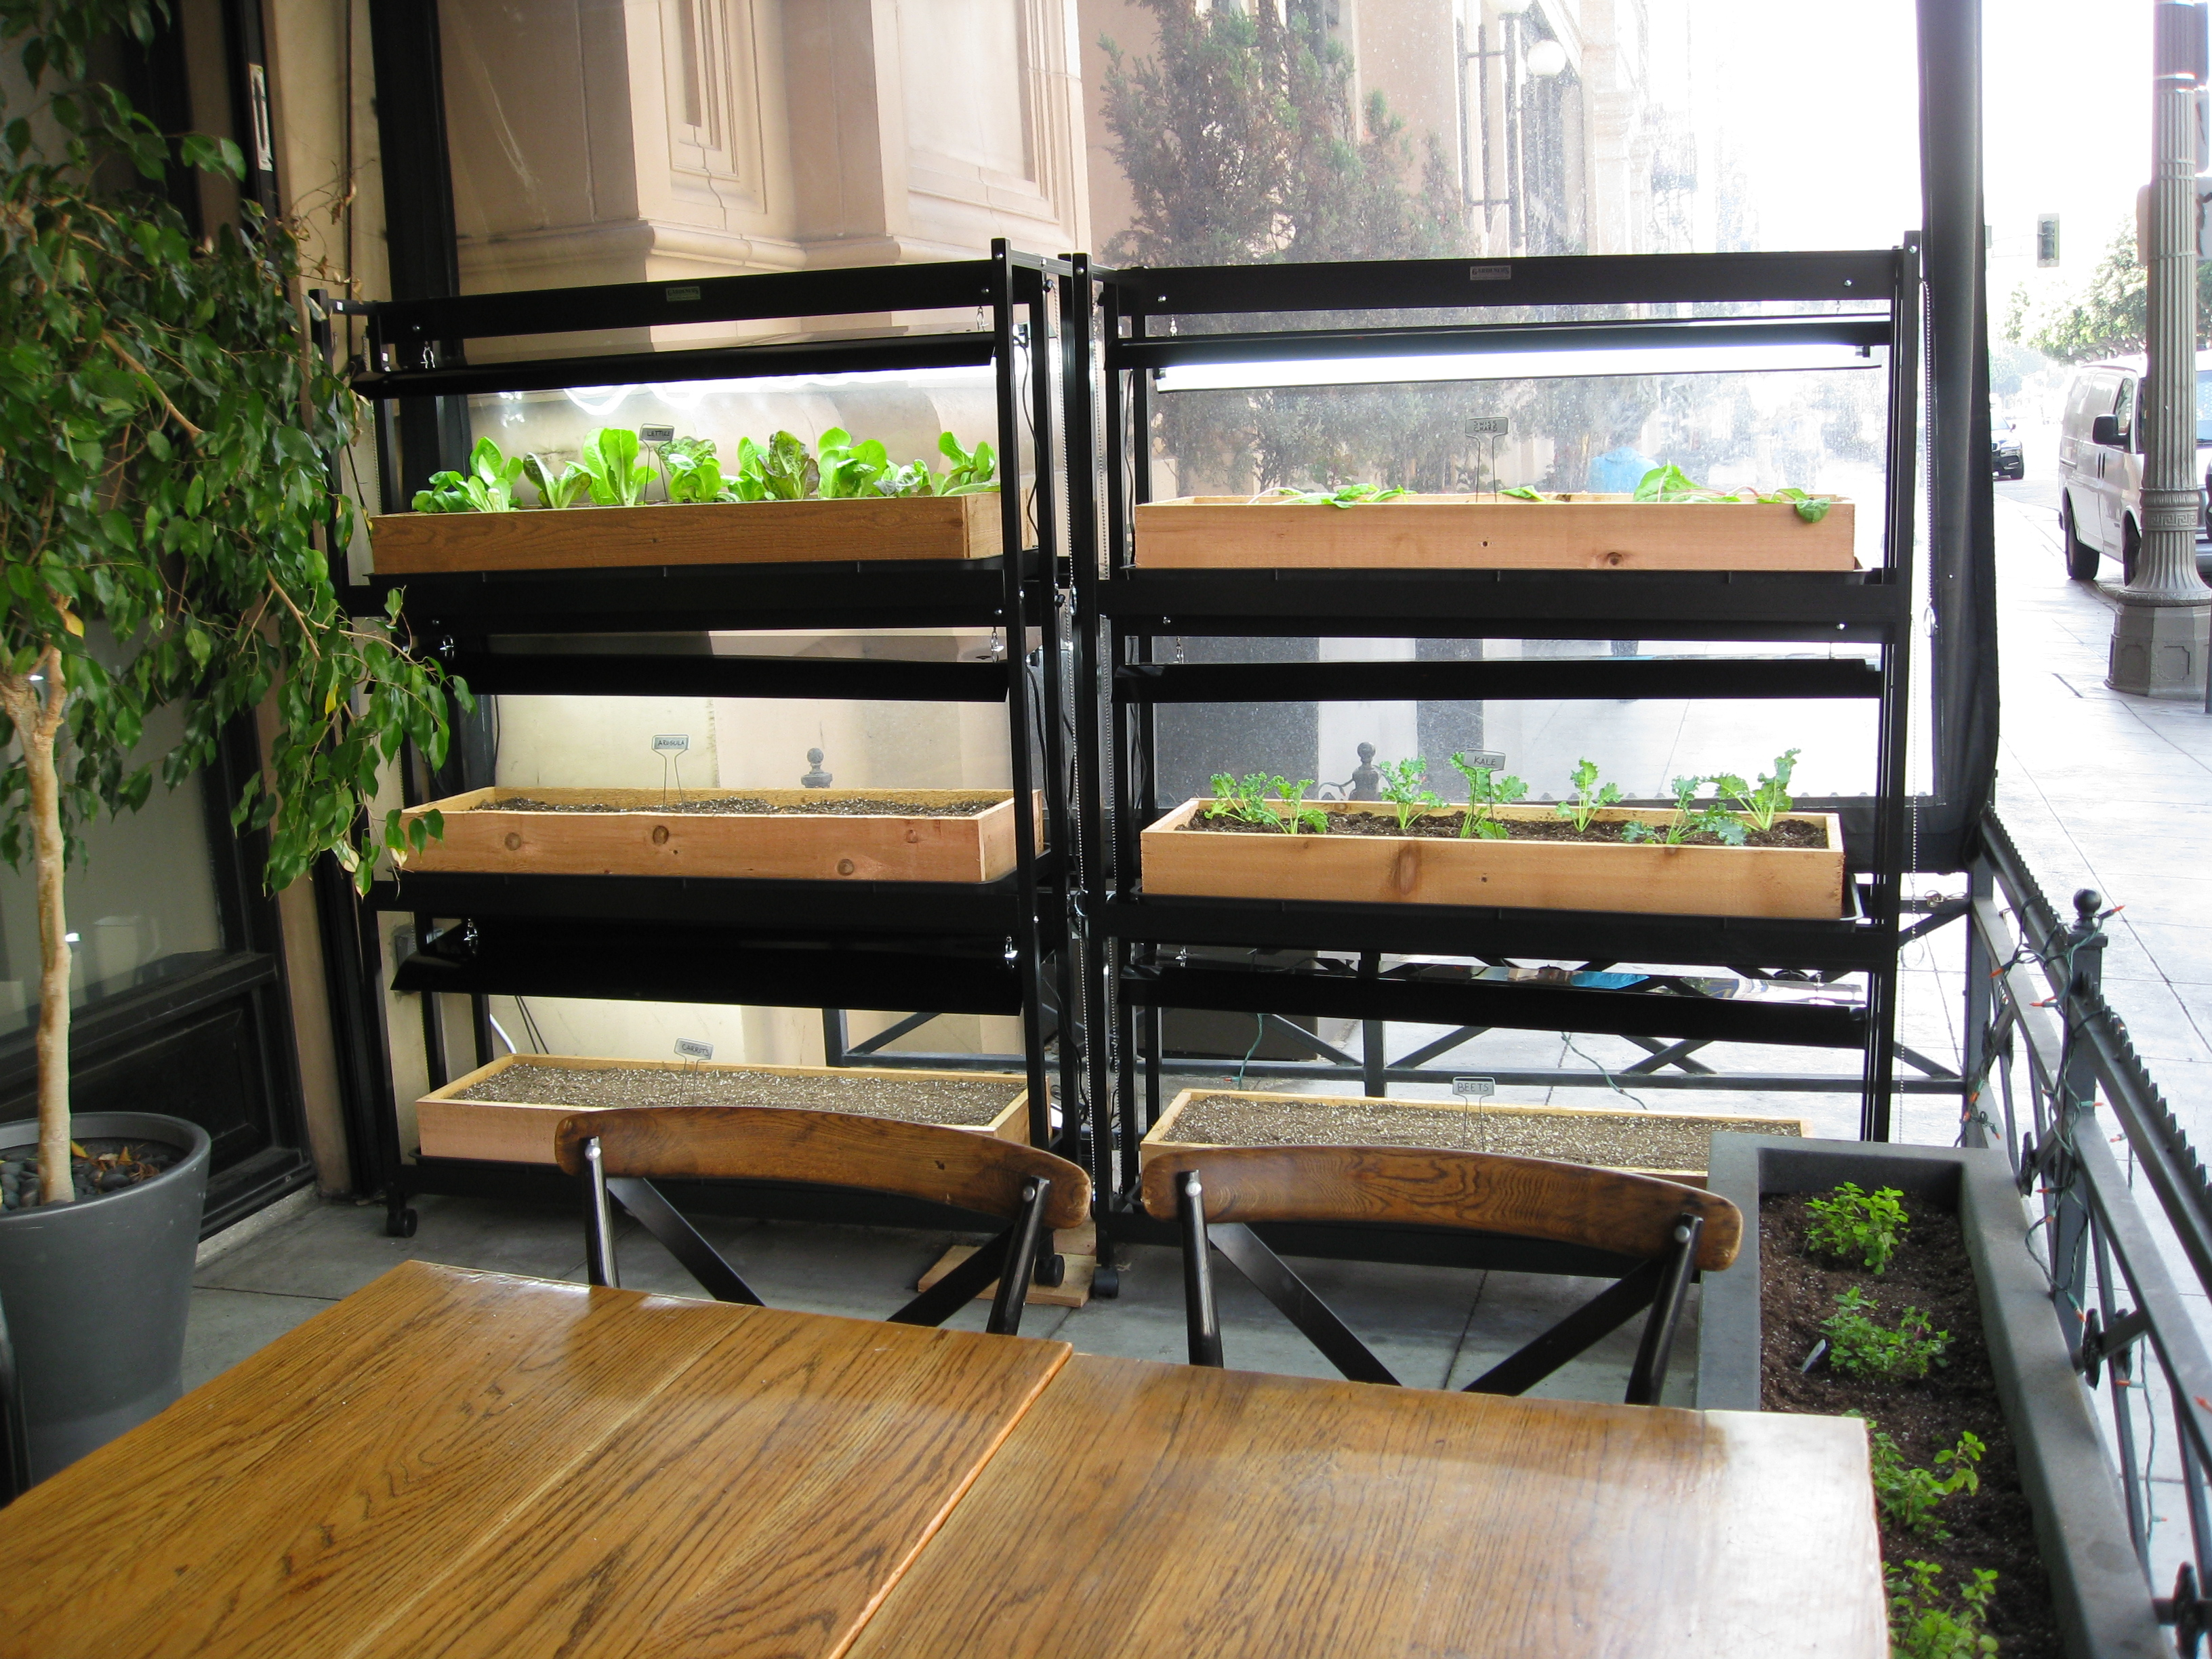 Vertical garden planters with grow-lights help produce lettuce, chard, arugula and more for the kitchen.